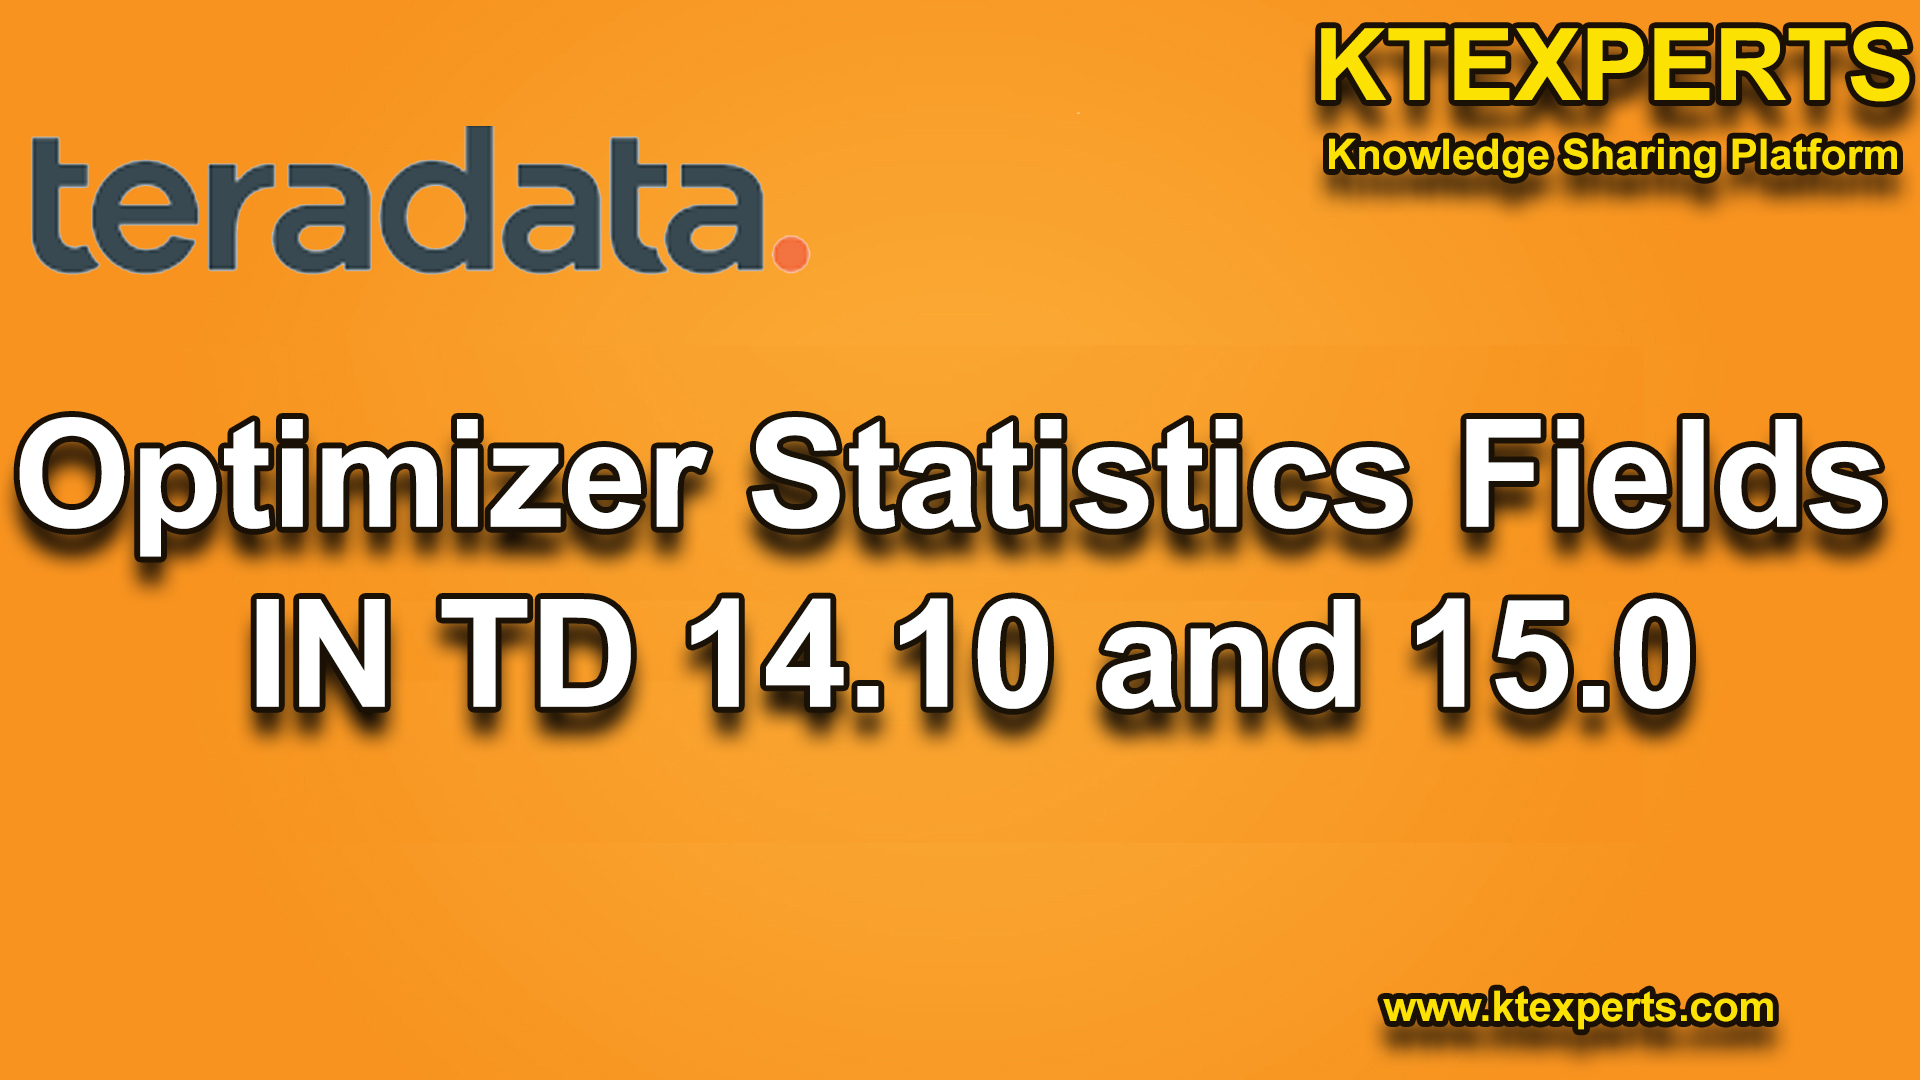 Optimizer Statistics Fields IN TD 14.10 And 15.0